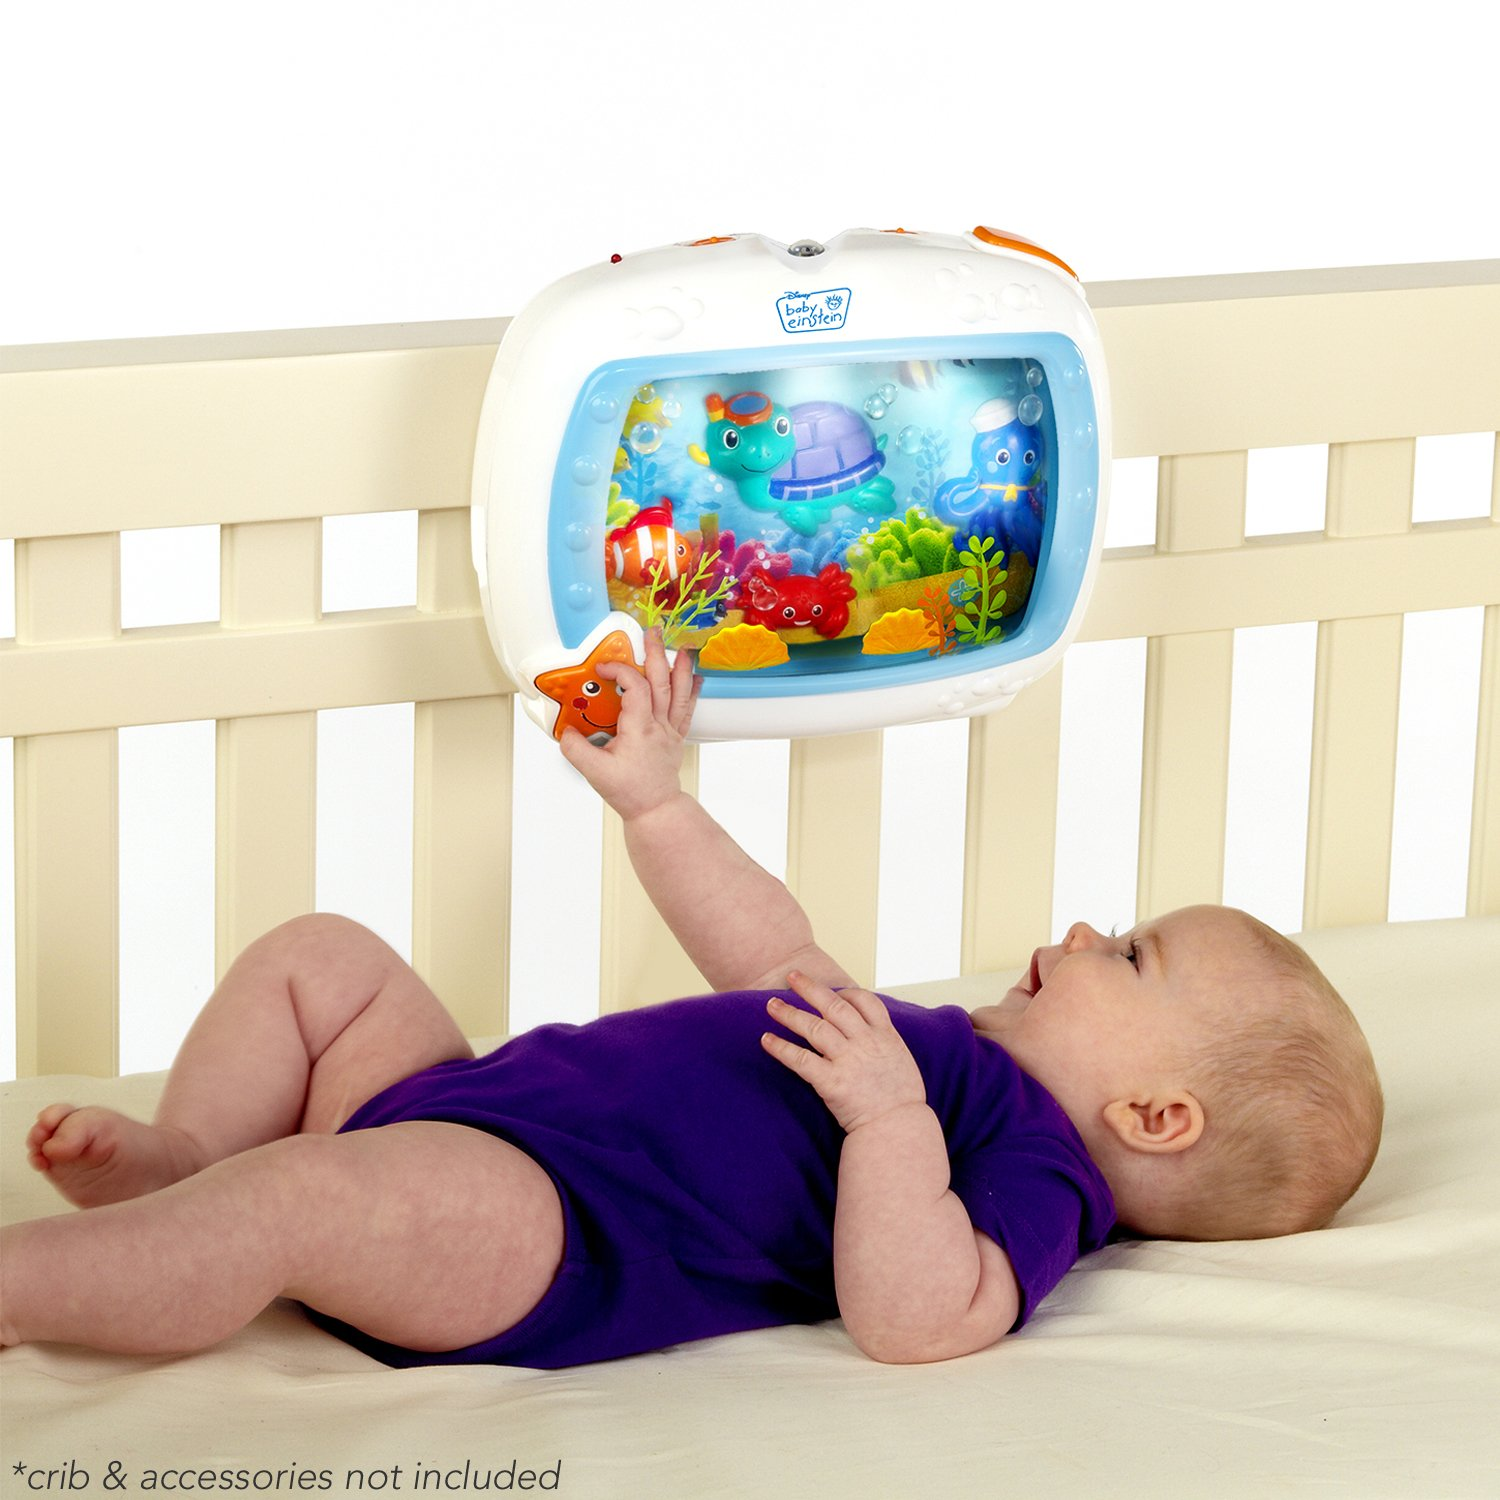 Crib soother babies r us - Crib Soother Babies R Us 43